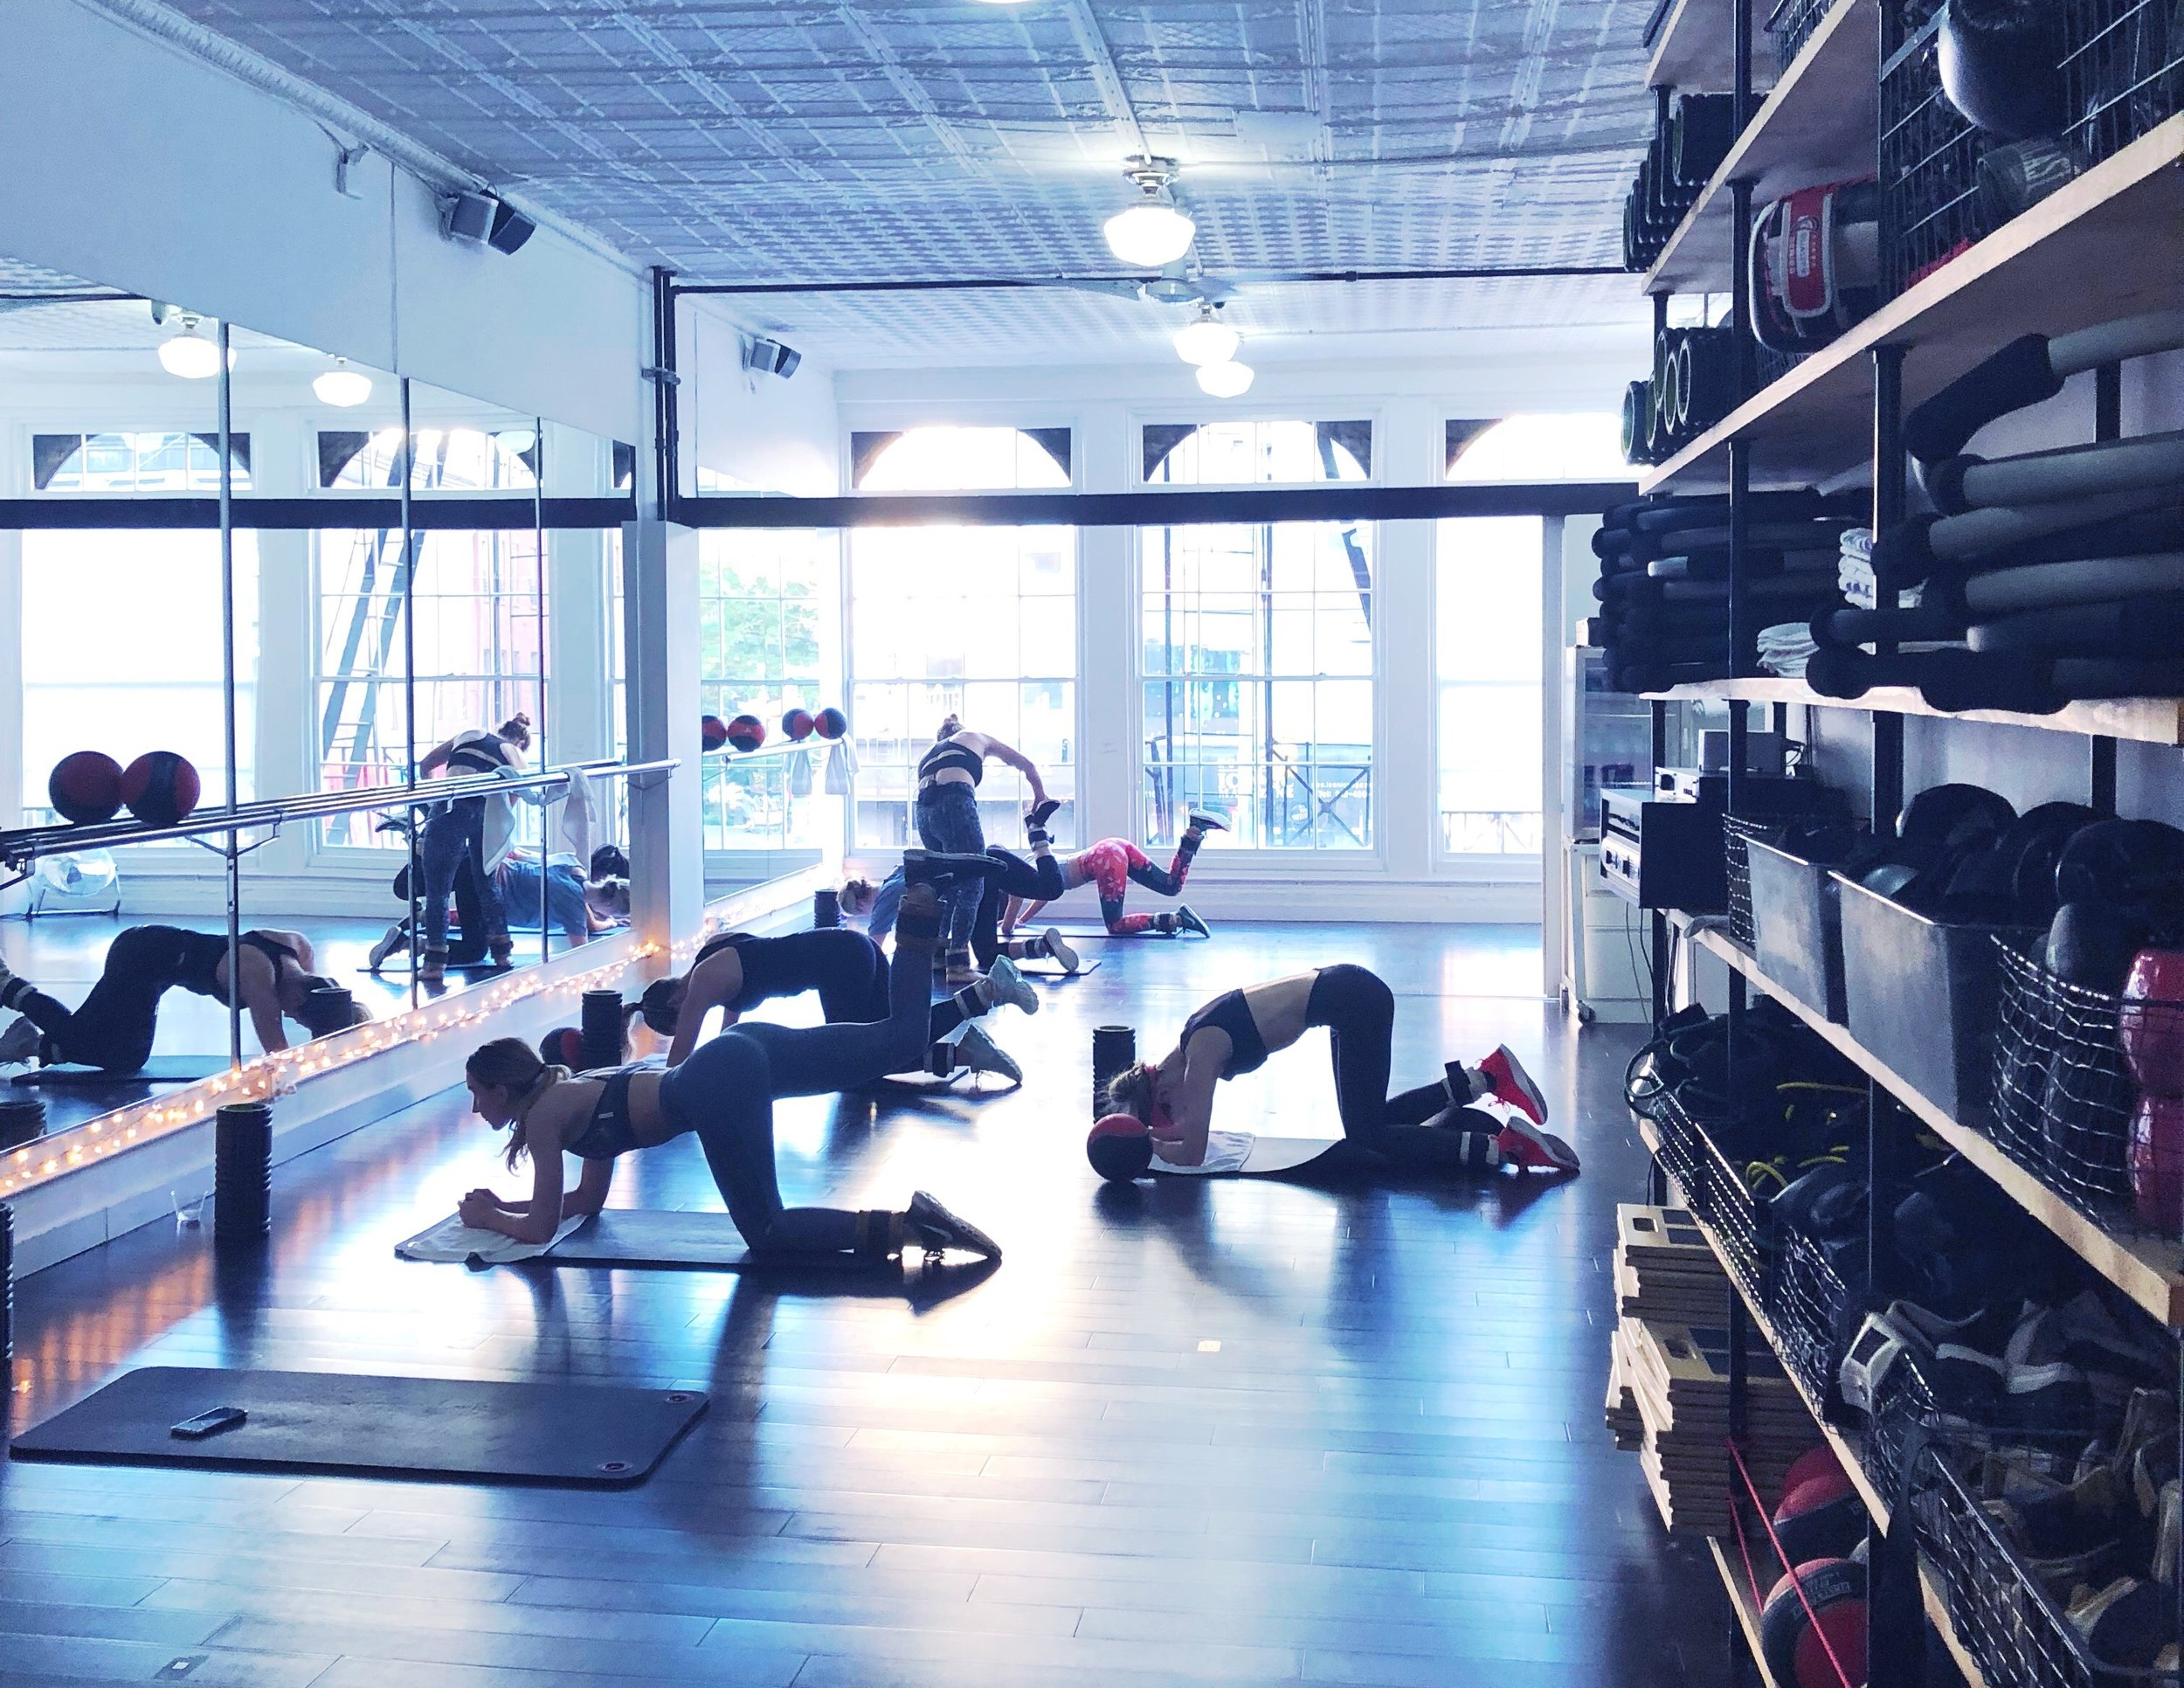 The studio at modeFIT during the modeFIT sculpt class.